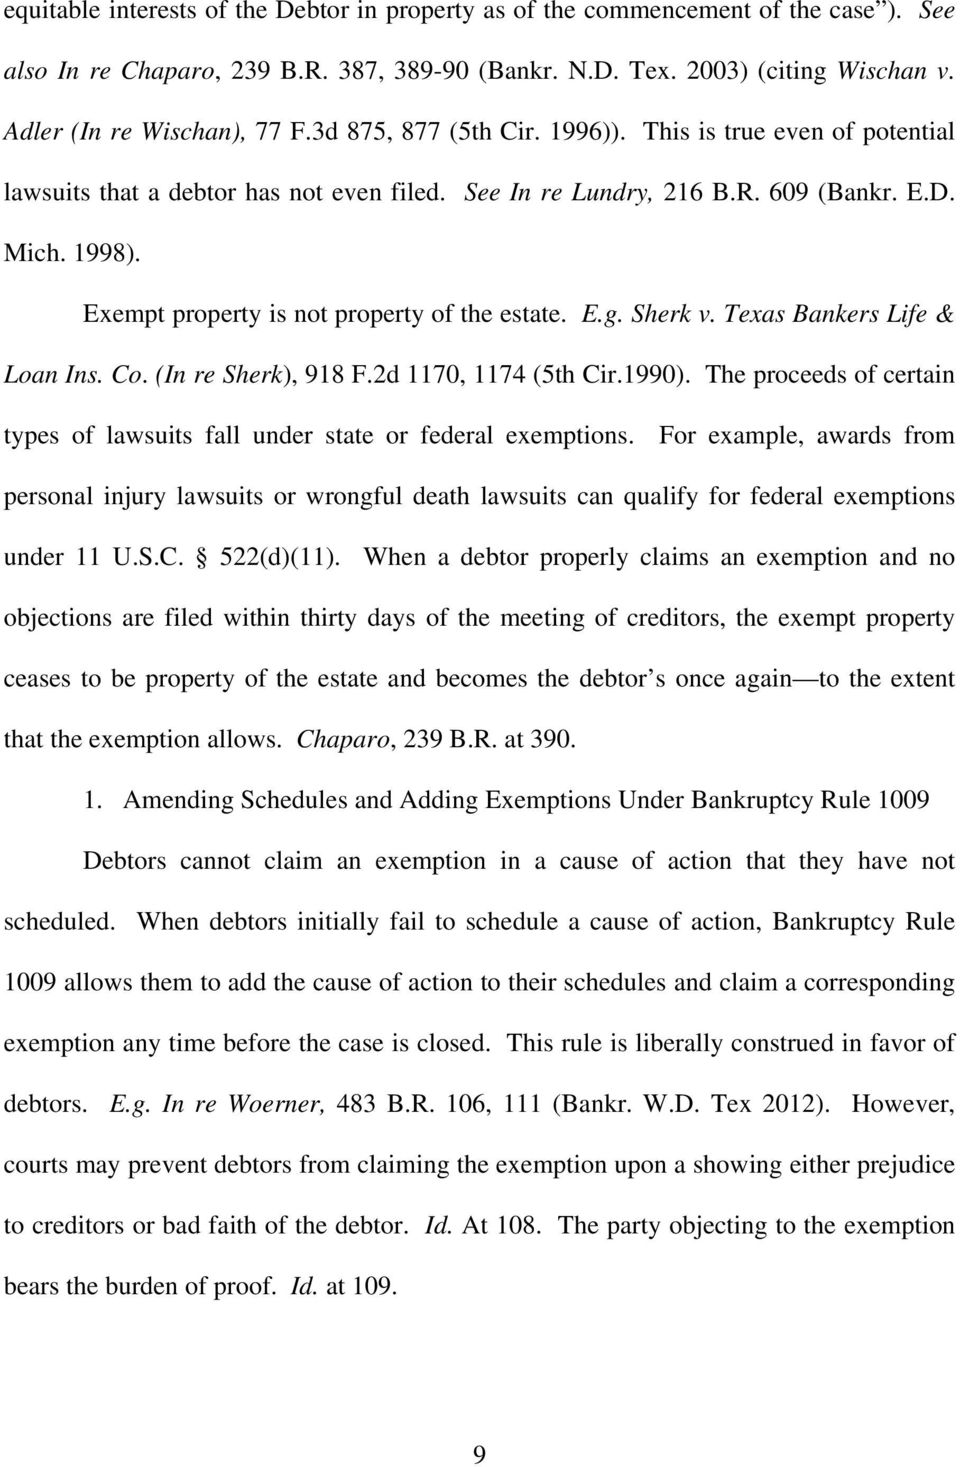 Exempt property is not property of the estate. E.g. Sherk v. Texas Bankers Life & Loan Ins. Co. (In re Sherk), 918 F.2d 1170, 1174 (5th Cir.1990).